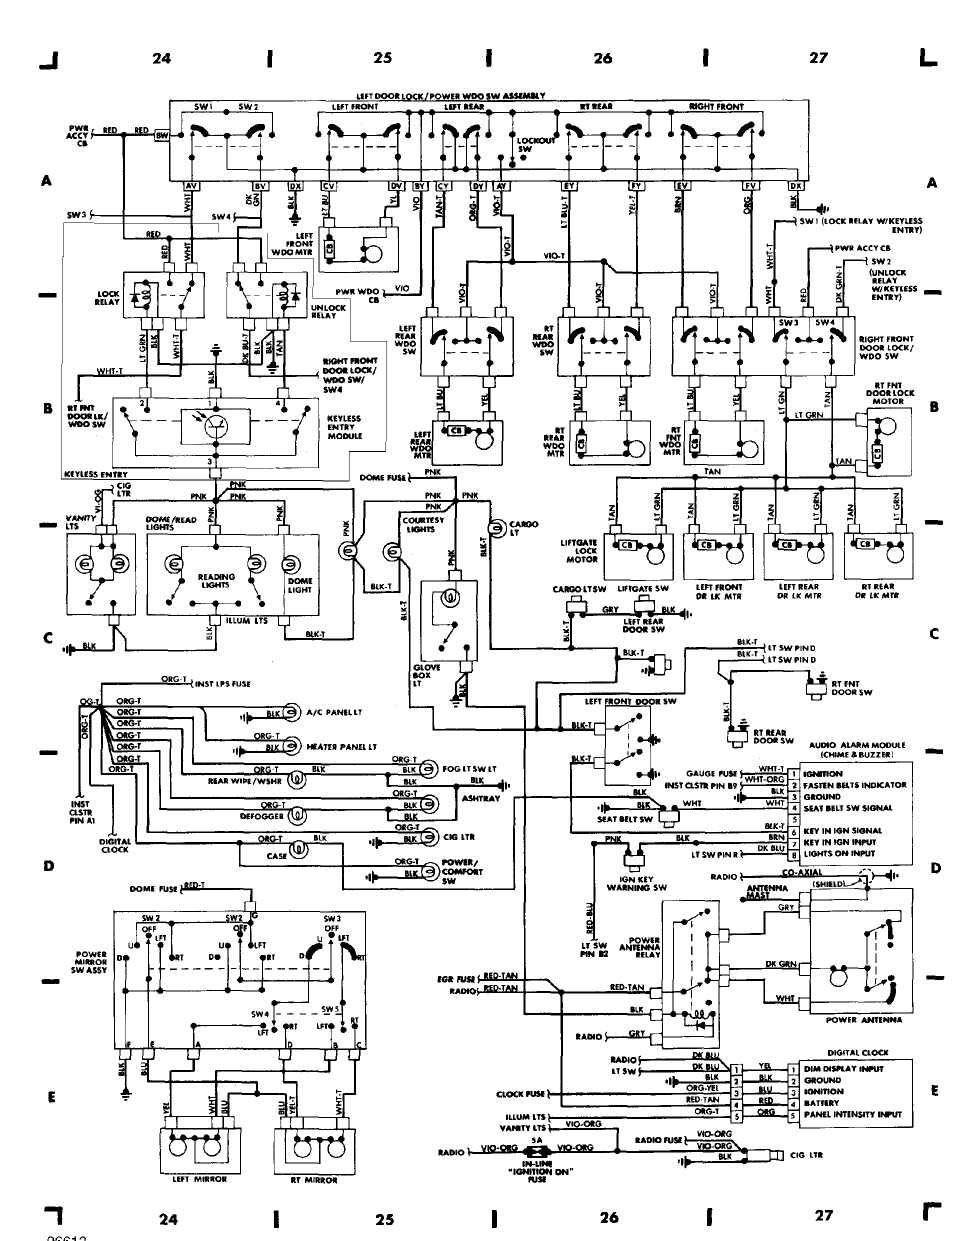 wiring_diagrams_html_61f5e0ad wiring diagrams 1984 1991 jeep cherokee (xj) jeep 94 jeep cherokee fuse box diagram at gsmx.co